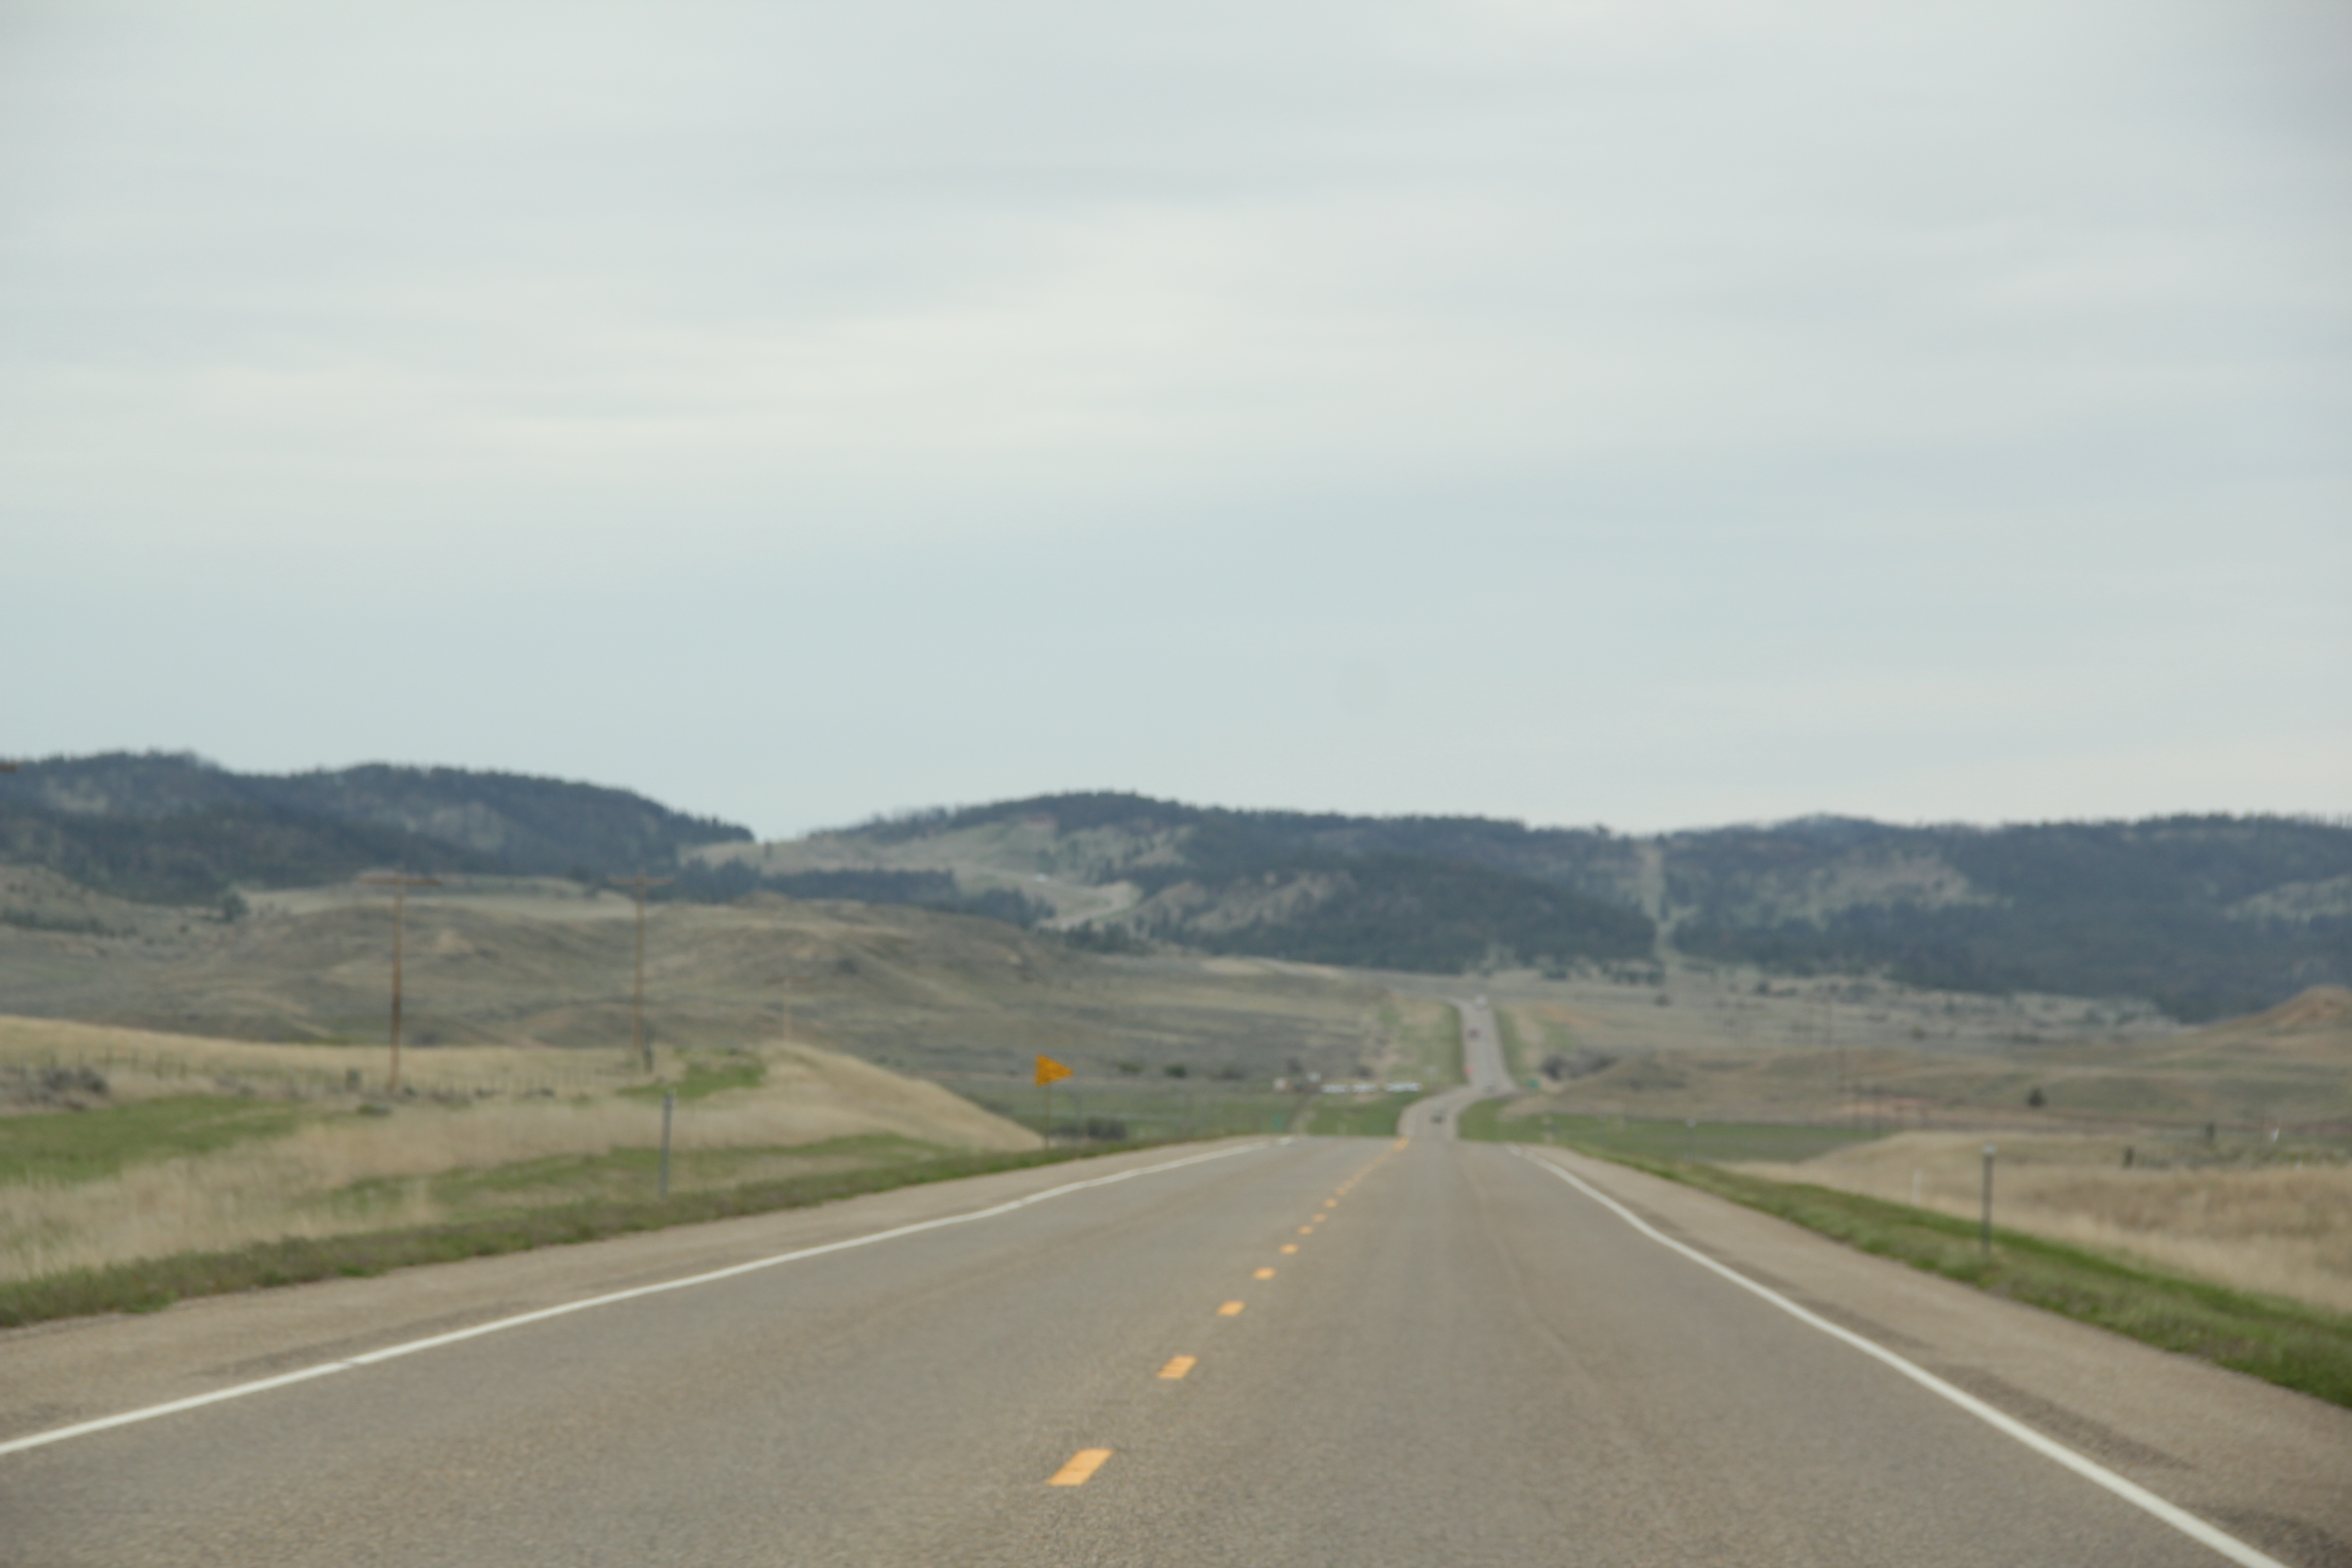 Montana rosebud county forsyth - U S Highway 212 As It Heads West Out Of The High Prairies Of Southeast Montana Becomes Known As The Warriors Trail An Appropriate Description Because